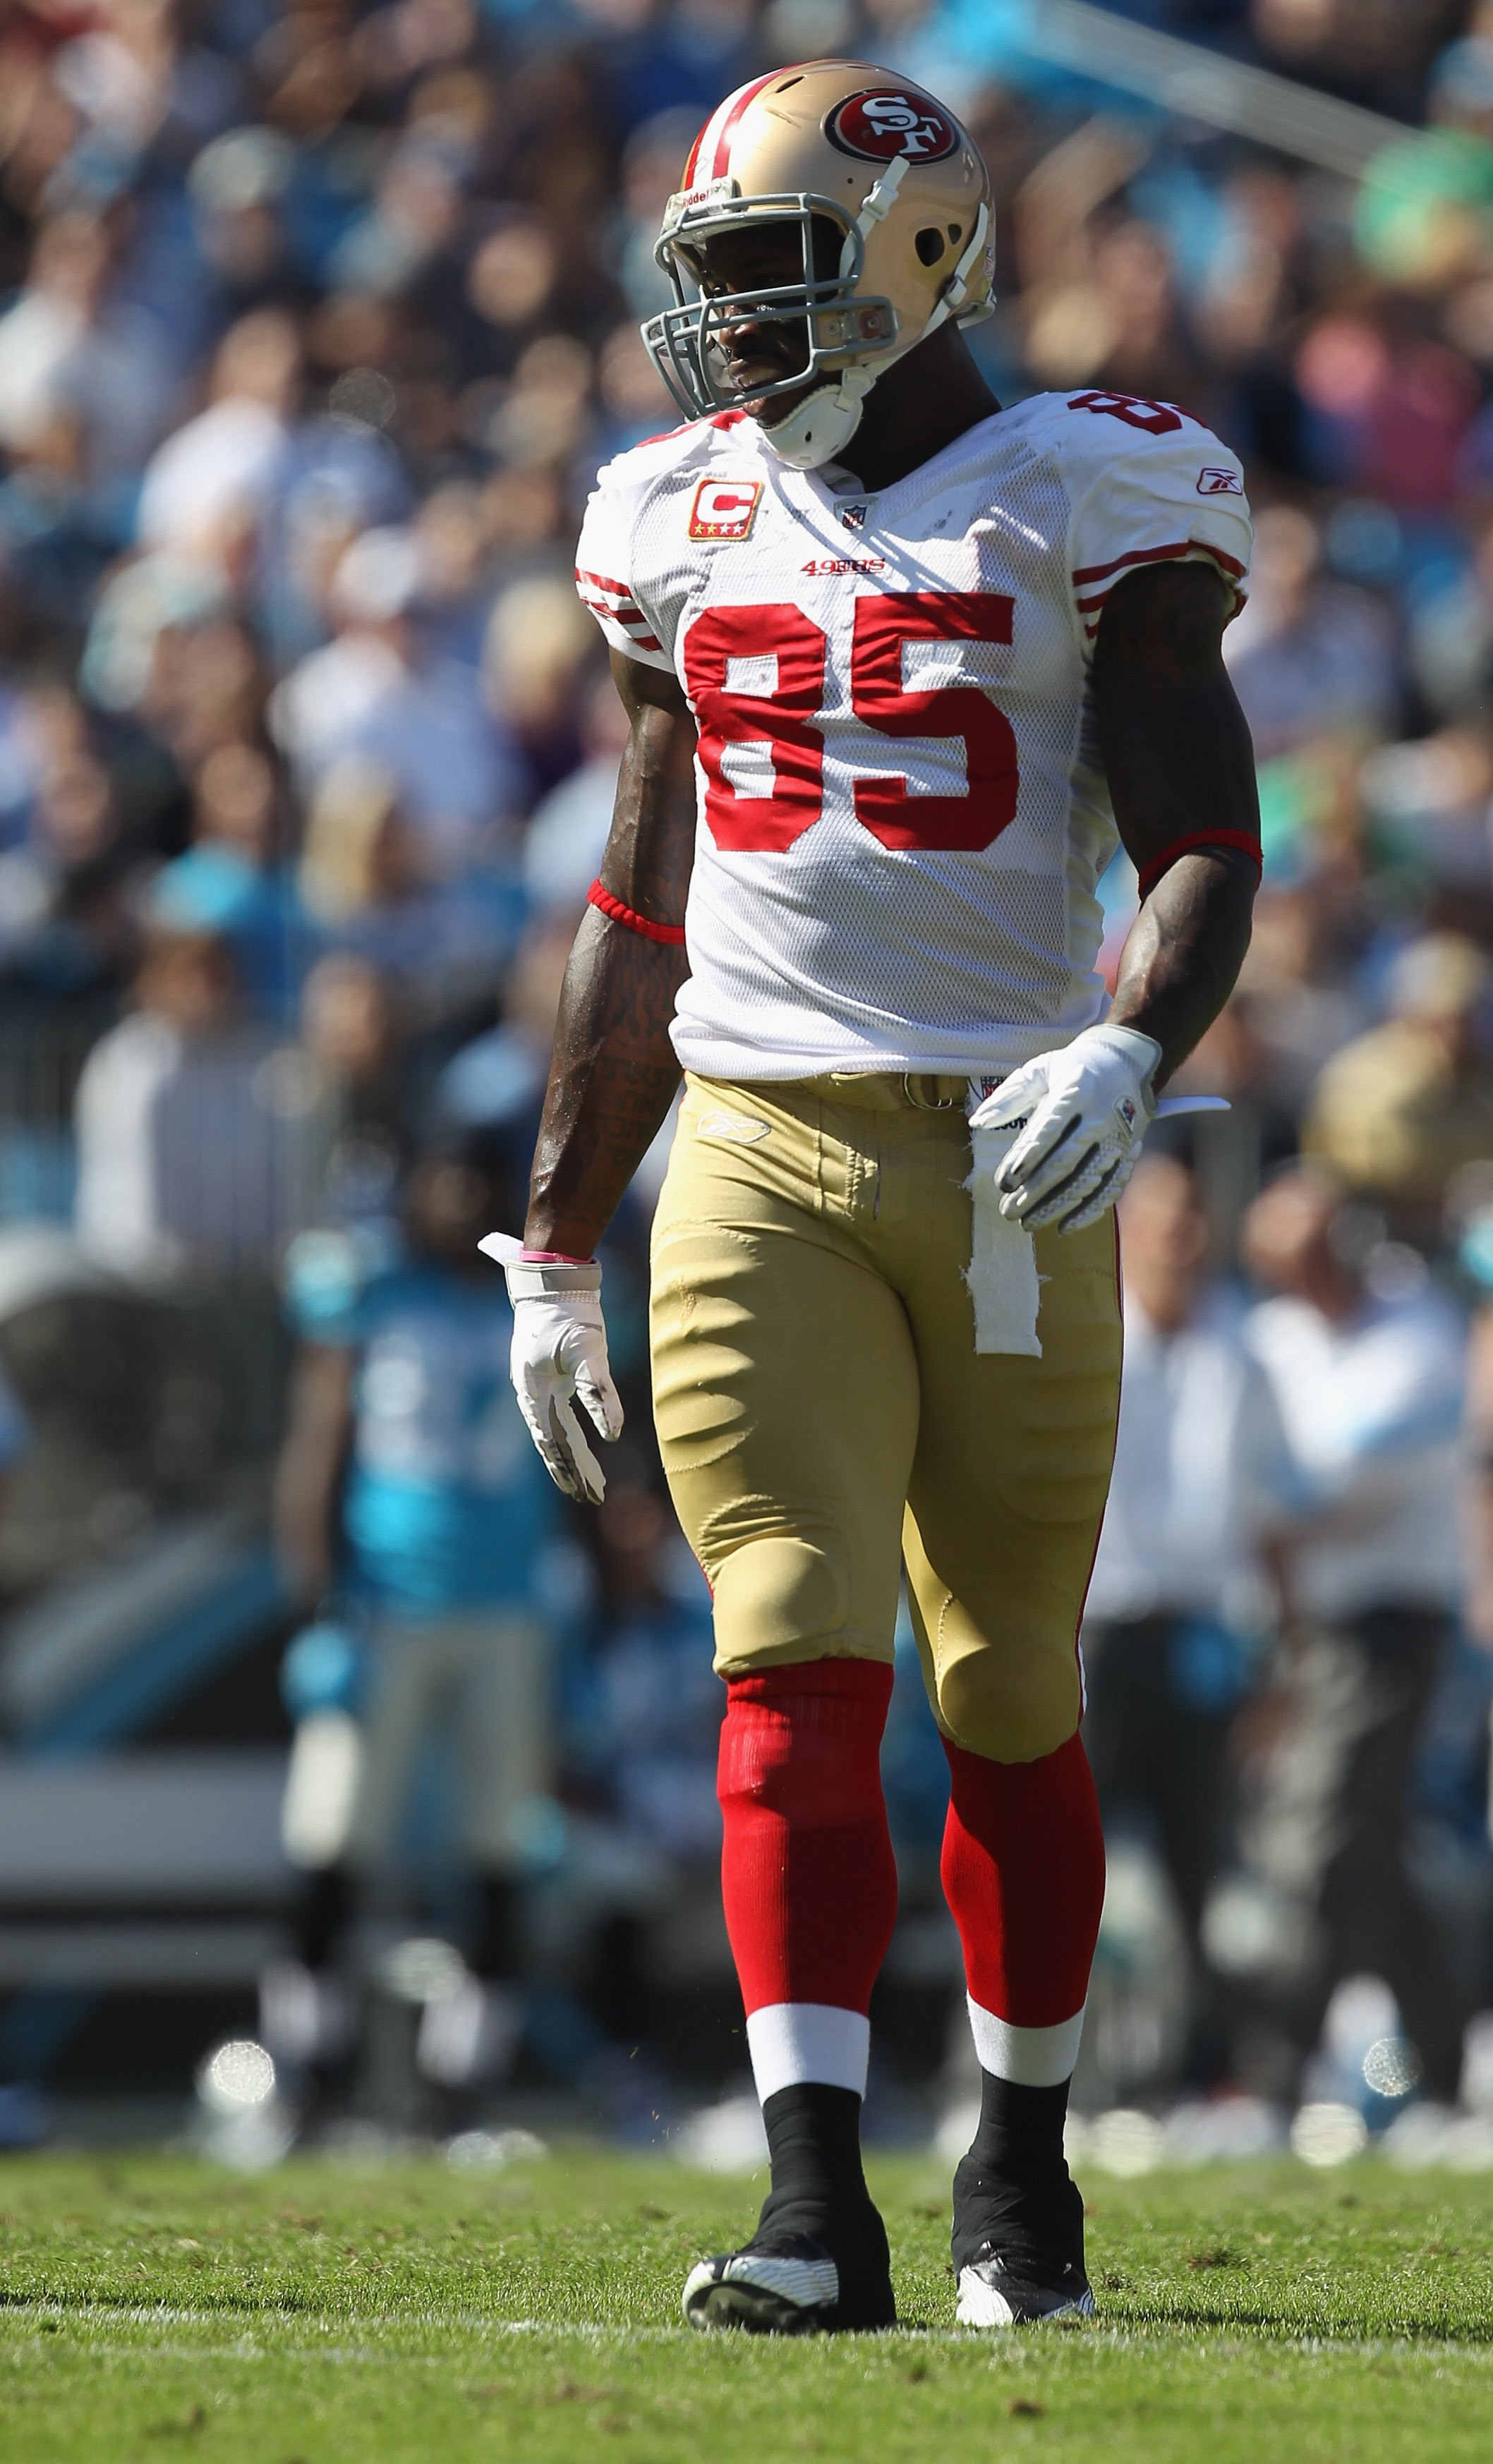 CHARLOTTE, NC - OCTOBER 24:  Vernon Davis #85 of the San Francisco 49ers against the Carolina Panthers during their game at Bank of America Stadium on October 24, 2010 in Charlotte, North Carolina.  (Photo by Streeter Lecka/Getty Images)